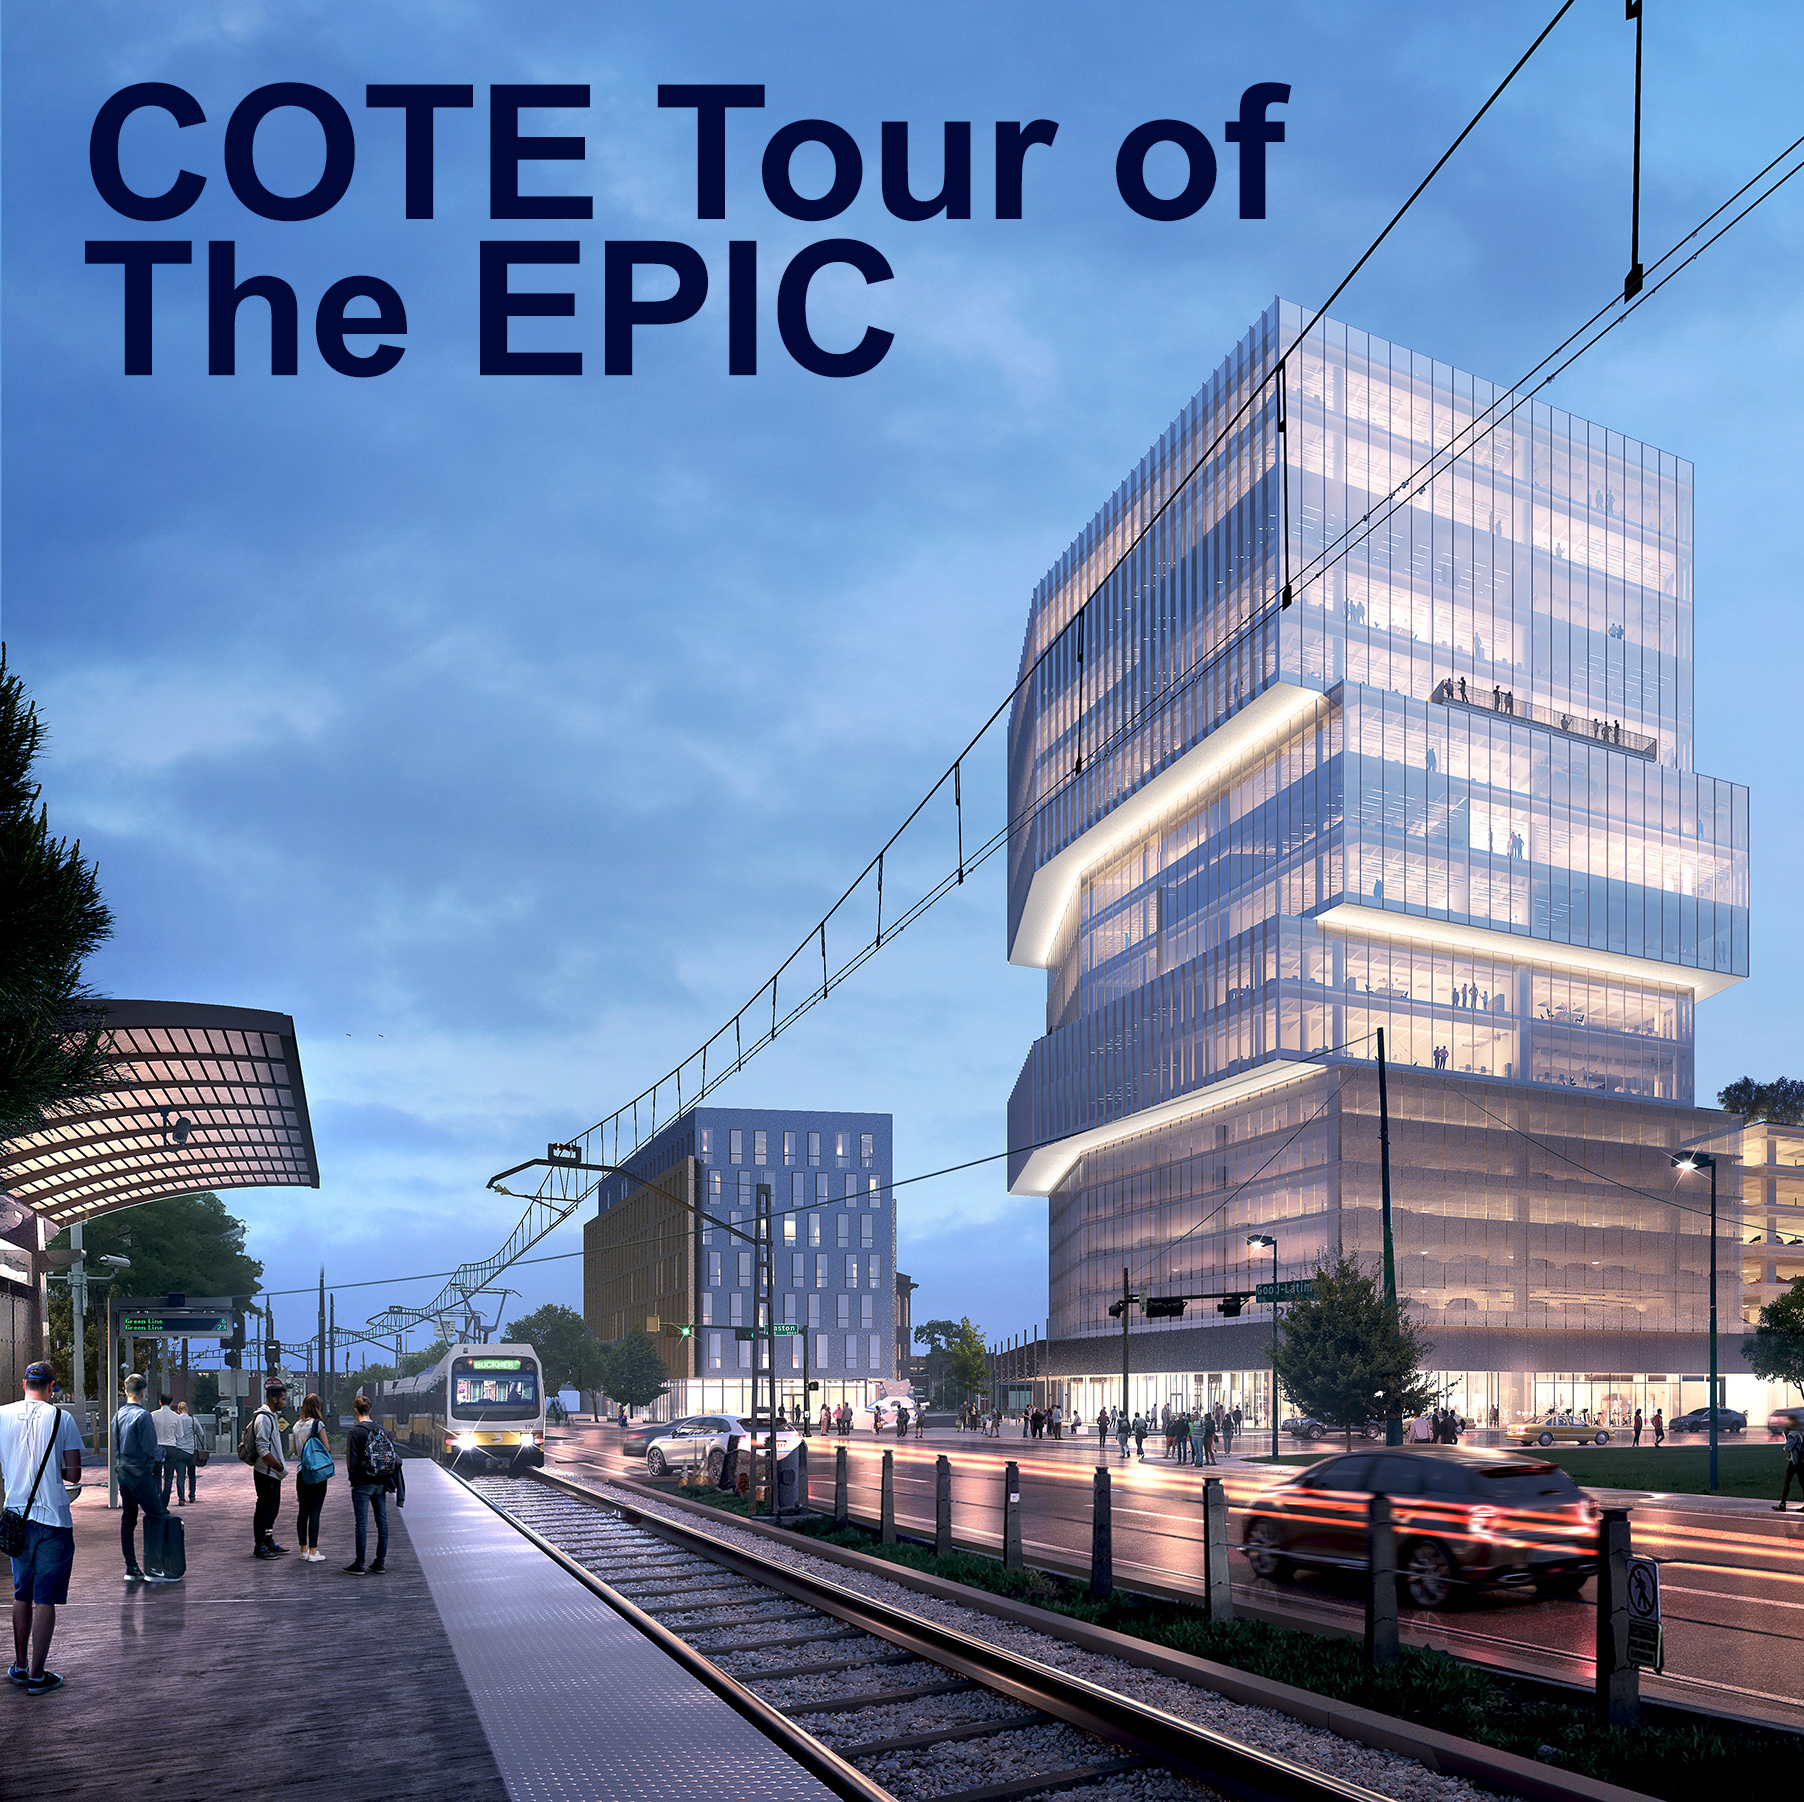 COTE Tour of The EPIC